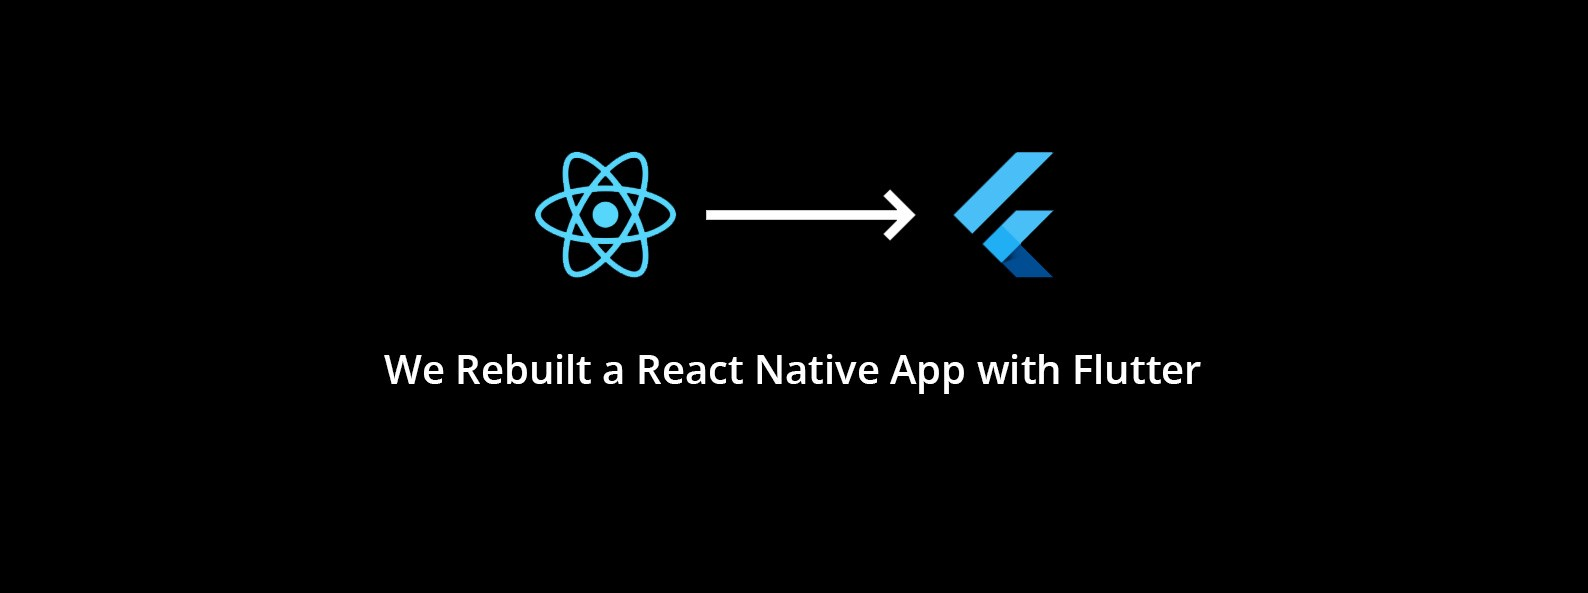 We Rebuilt A React Native App With Flutter Geekyants Blog Making Mechanic Diagram And Electrical Architectural Designs Last Year Launched Starter Kit Called Flat This Contains Ui Design Along Redux Nativebase Components For Ios